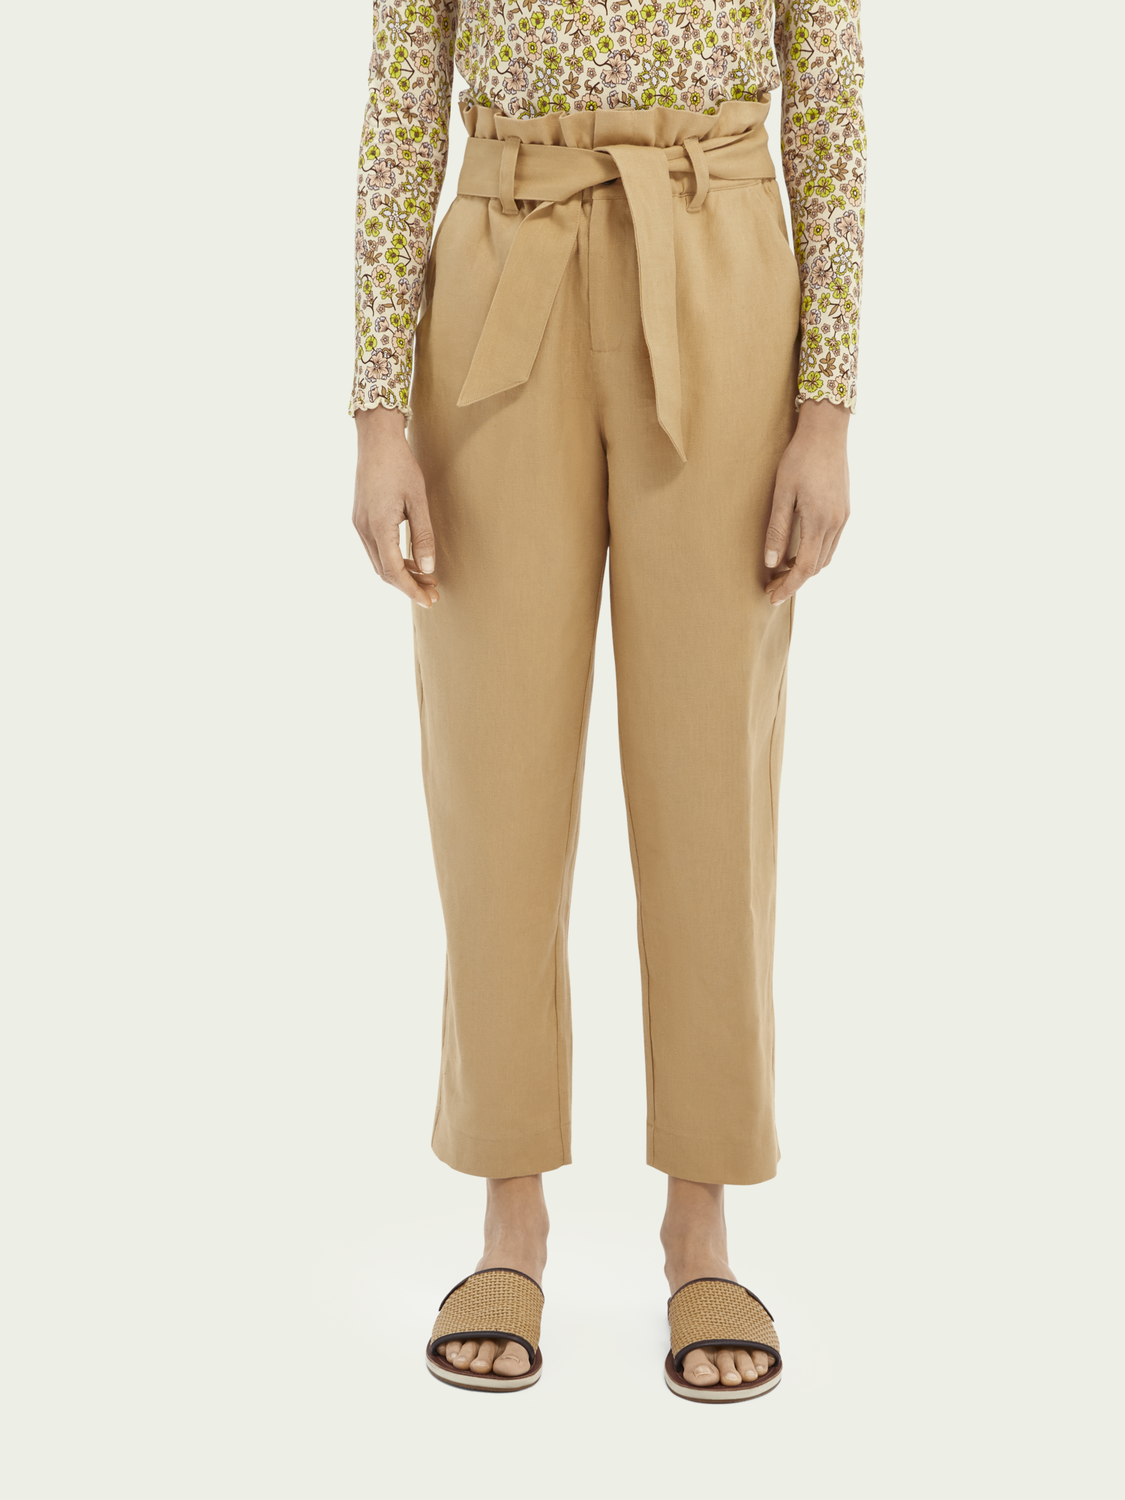 Paperbag linen trousers